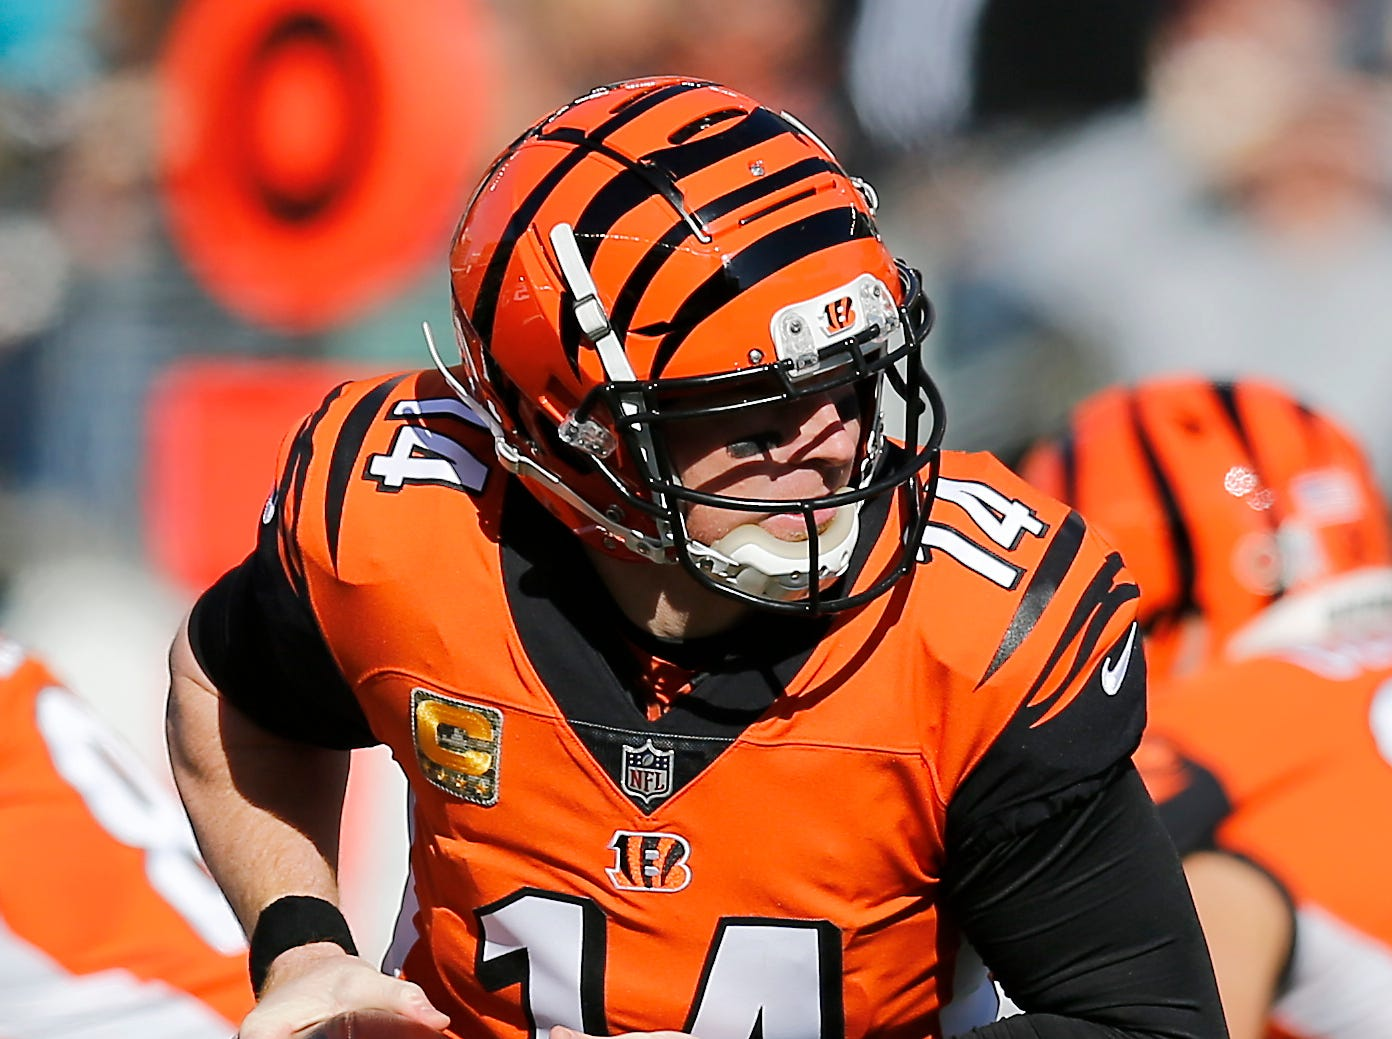 Cincinnati Bengals quarterback Andy Dalton (14) drops back to hand off in the first quarter of the NFL Week 10 game between the Cincinnati Bengals and the New Orleans Saints at Paul Brown Stadium in downtown Cincinnati on Sunday, Nov. 11, 2018. The Saints led 35-7 at halftime.